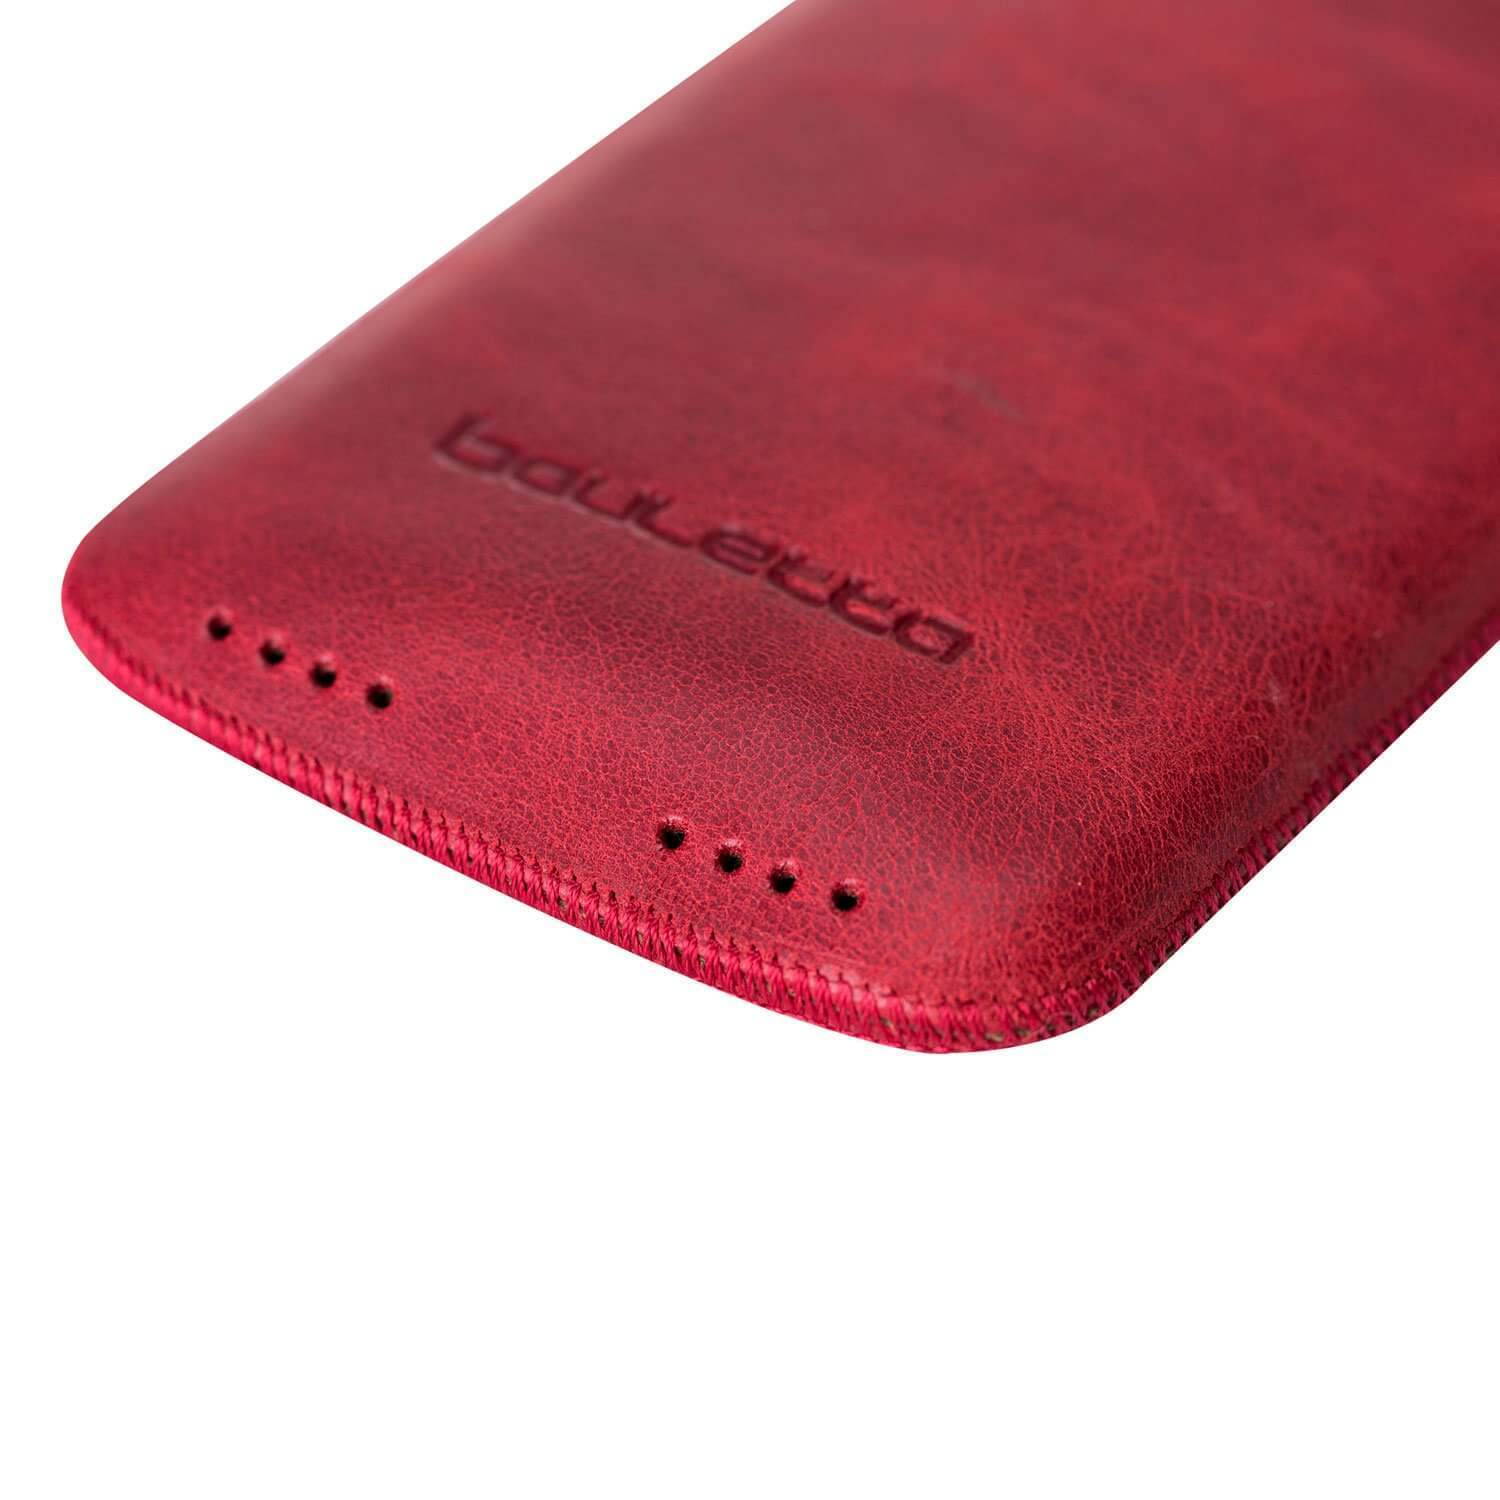 Phone Case Multi Leather Case for Apple iPhone XS Max - Tiguan Red Bouletta Case